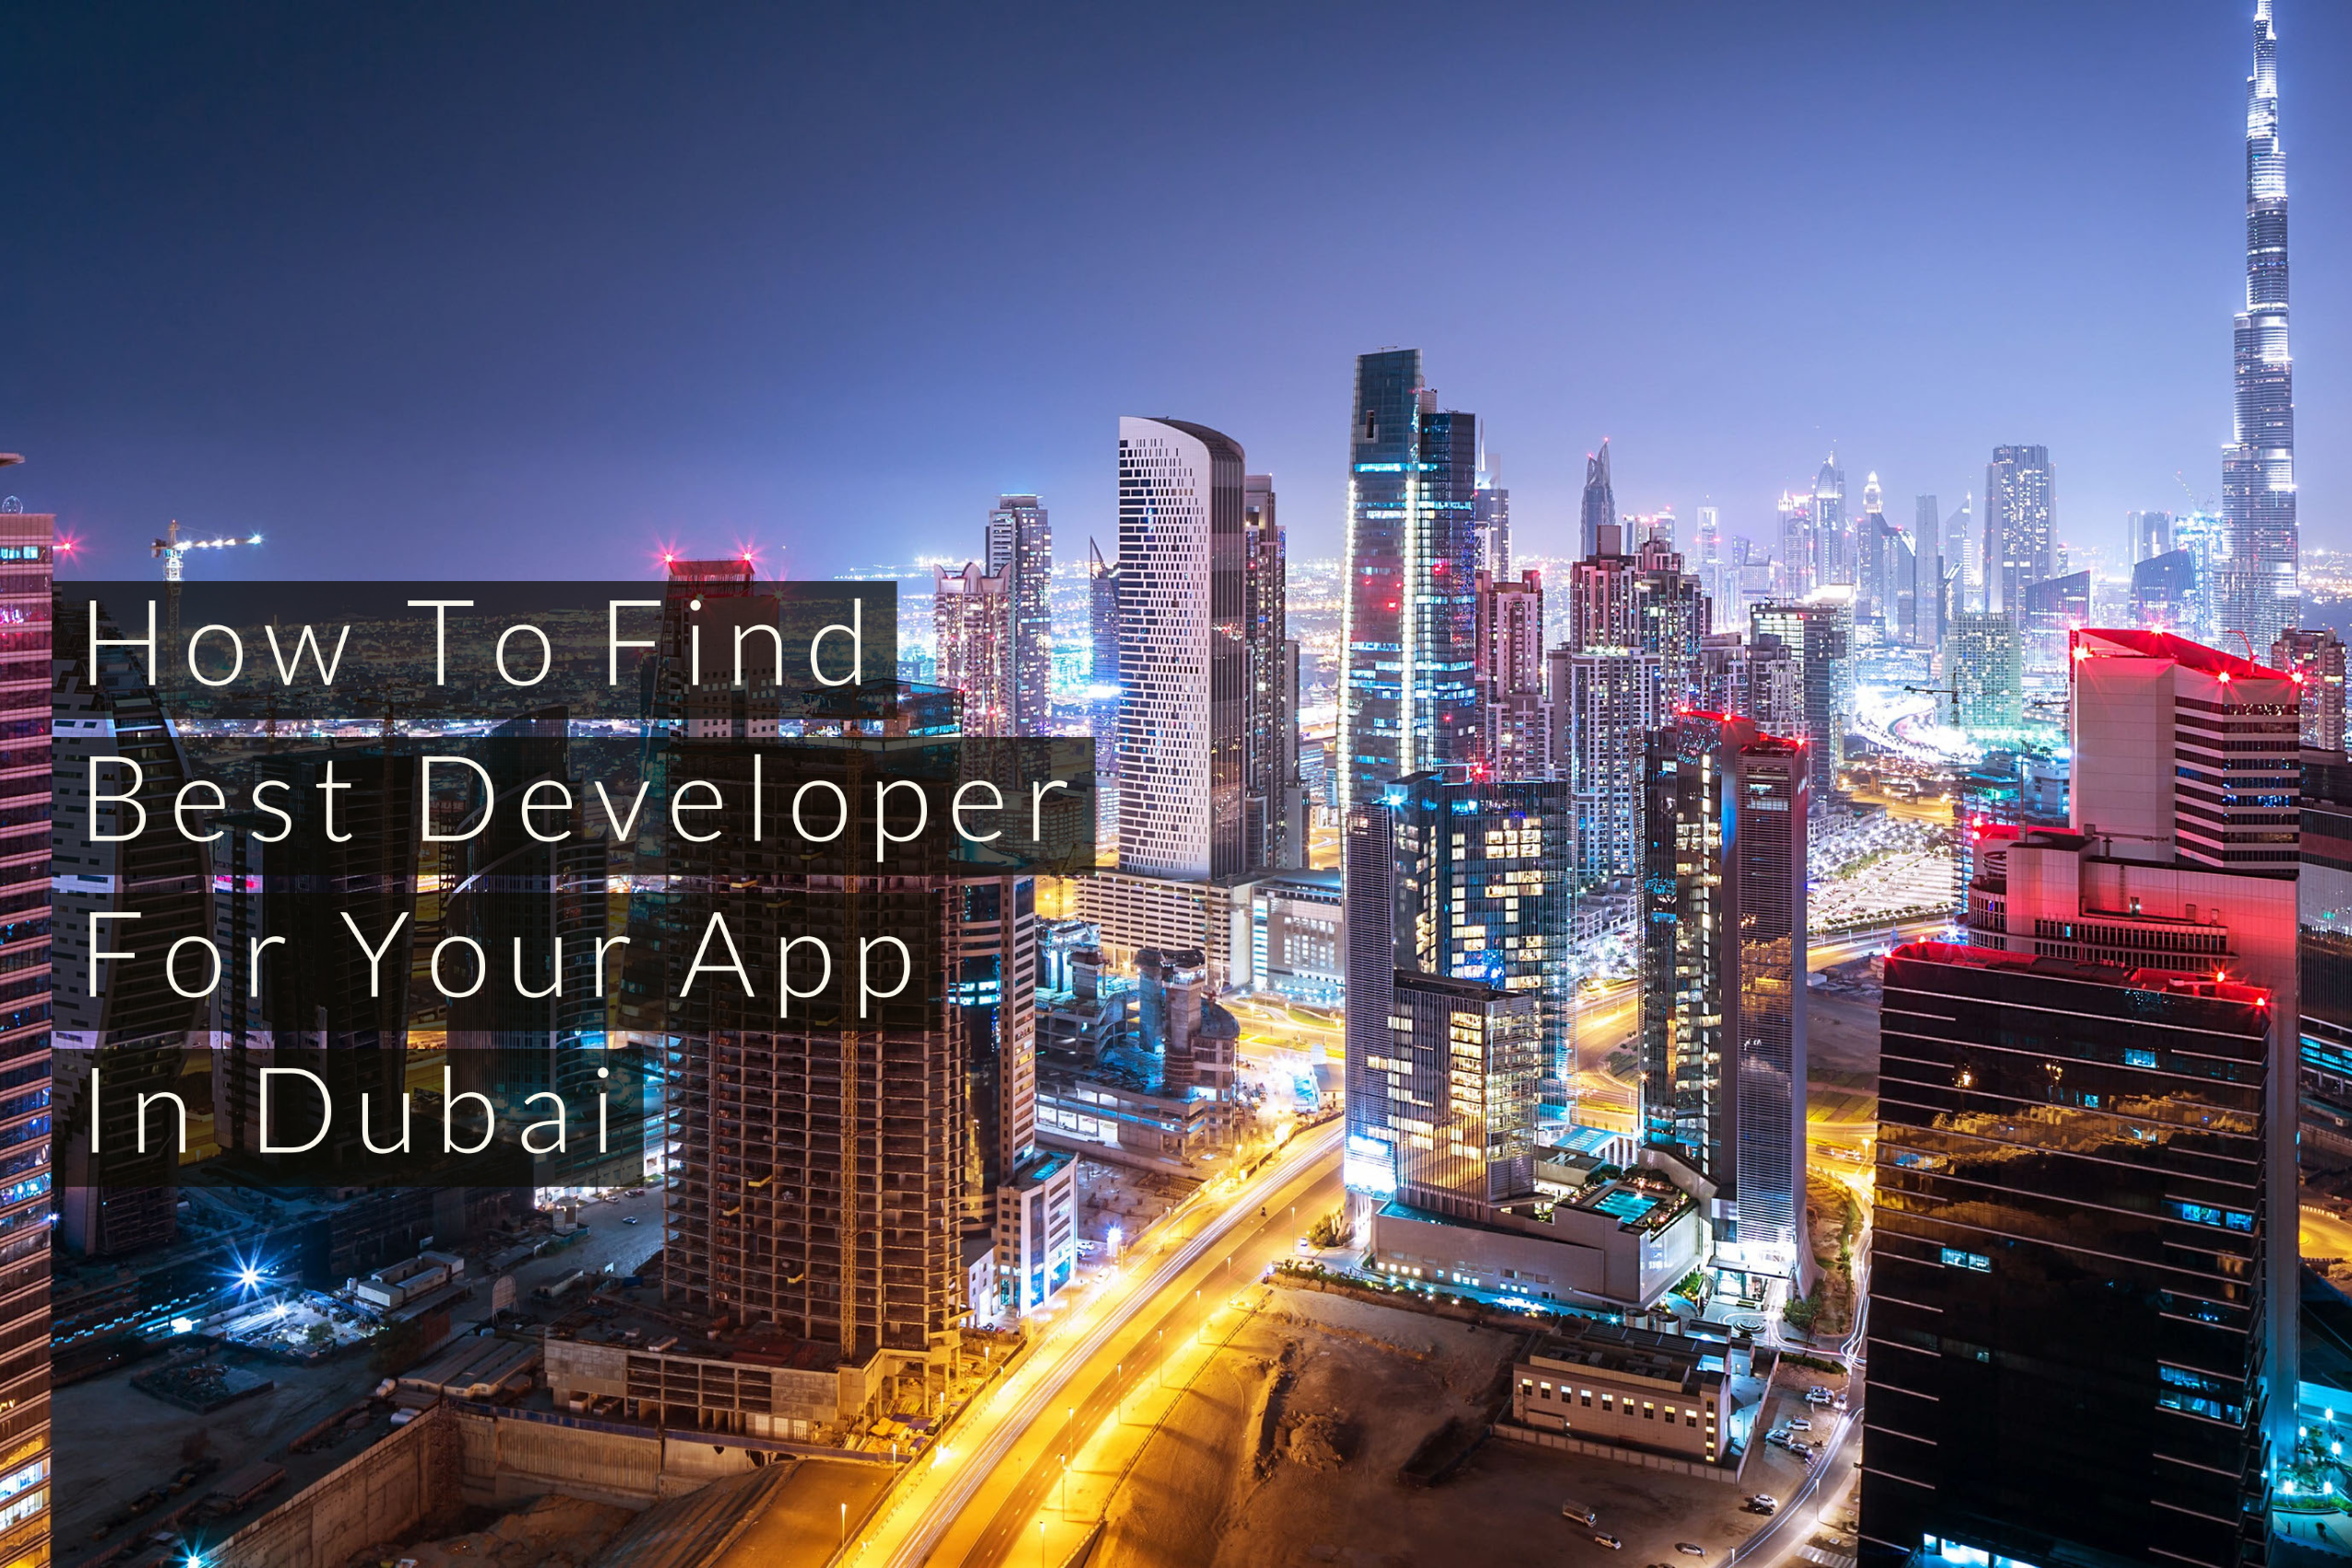 How To Find The Best Developer For Your App In Dubai